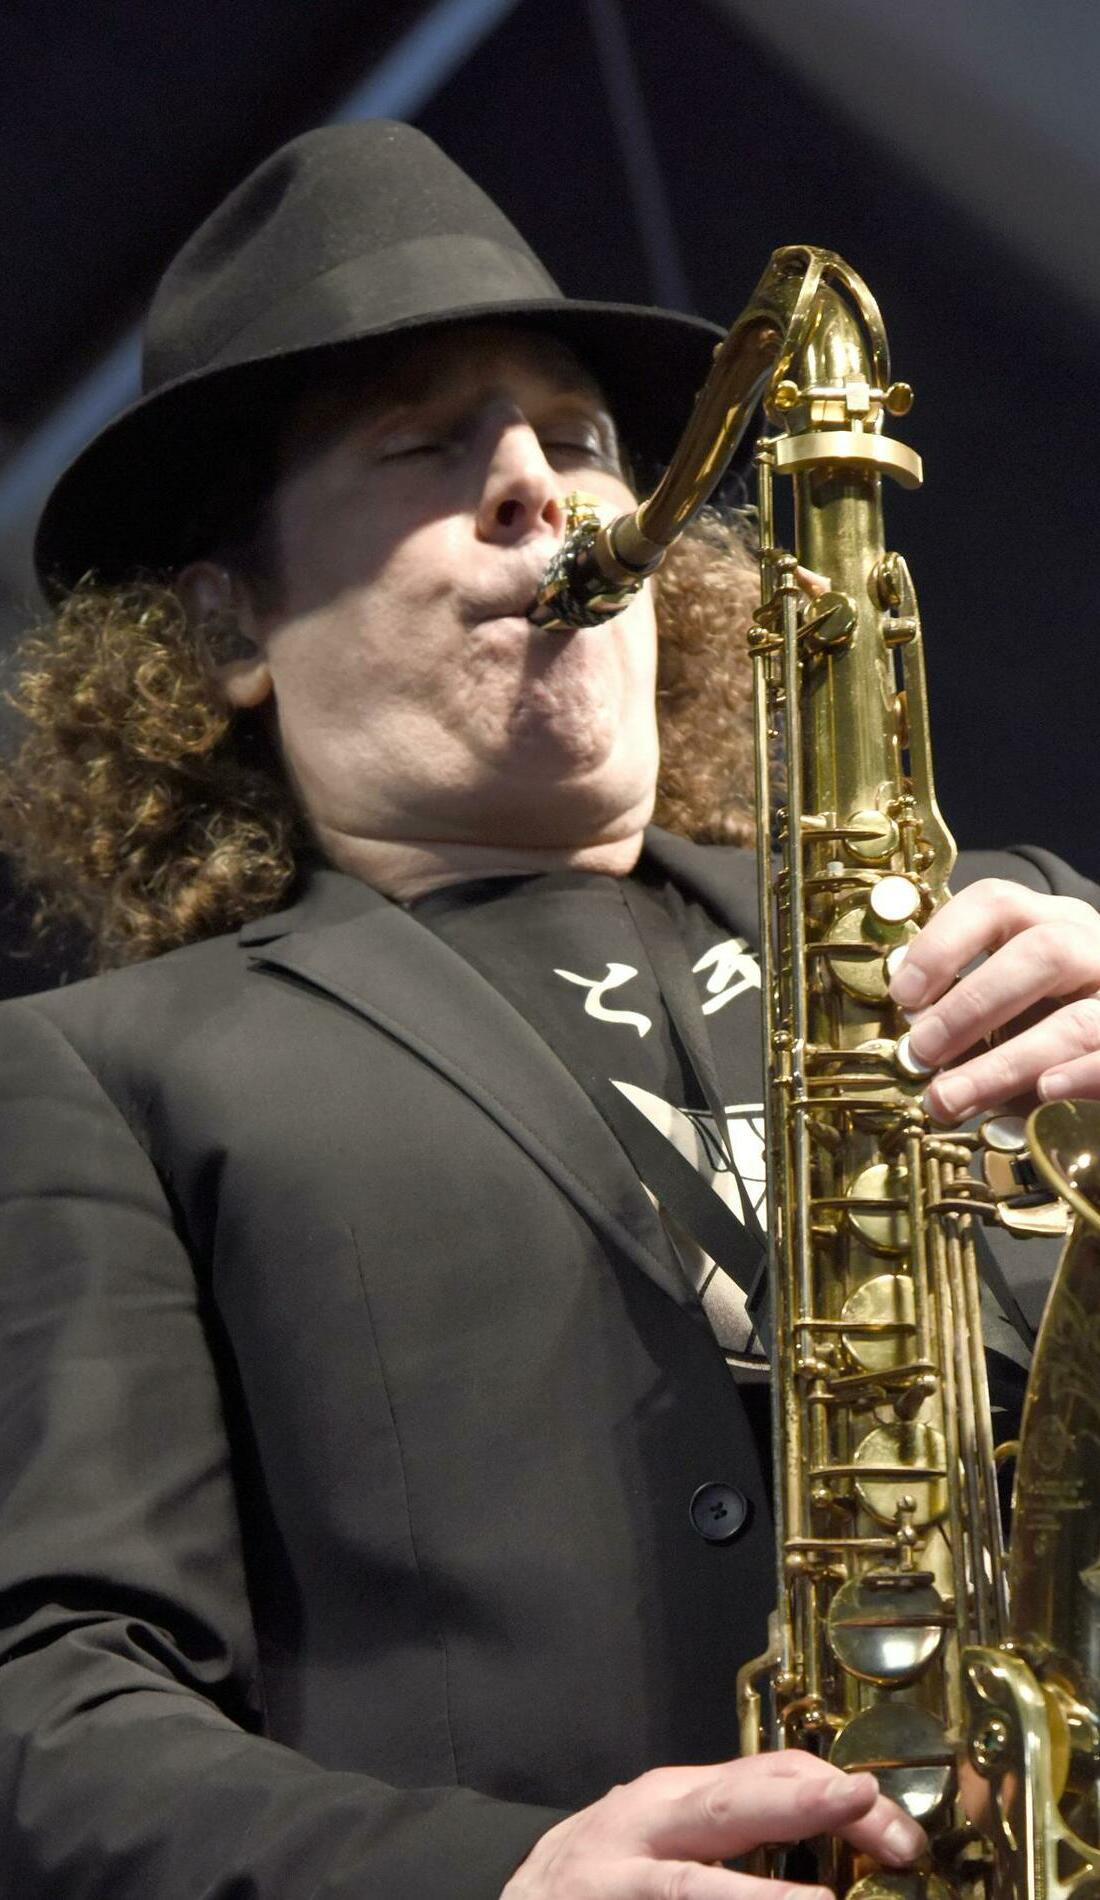 A Boney James live event